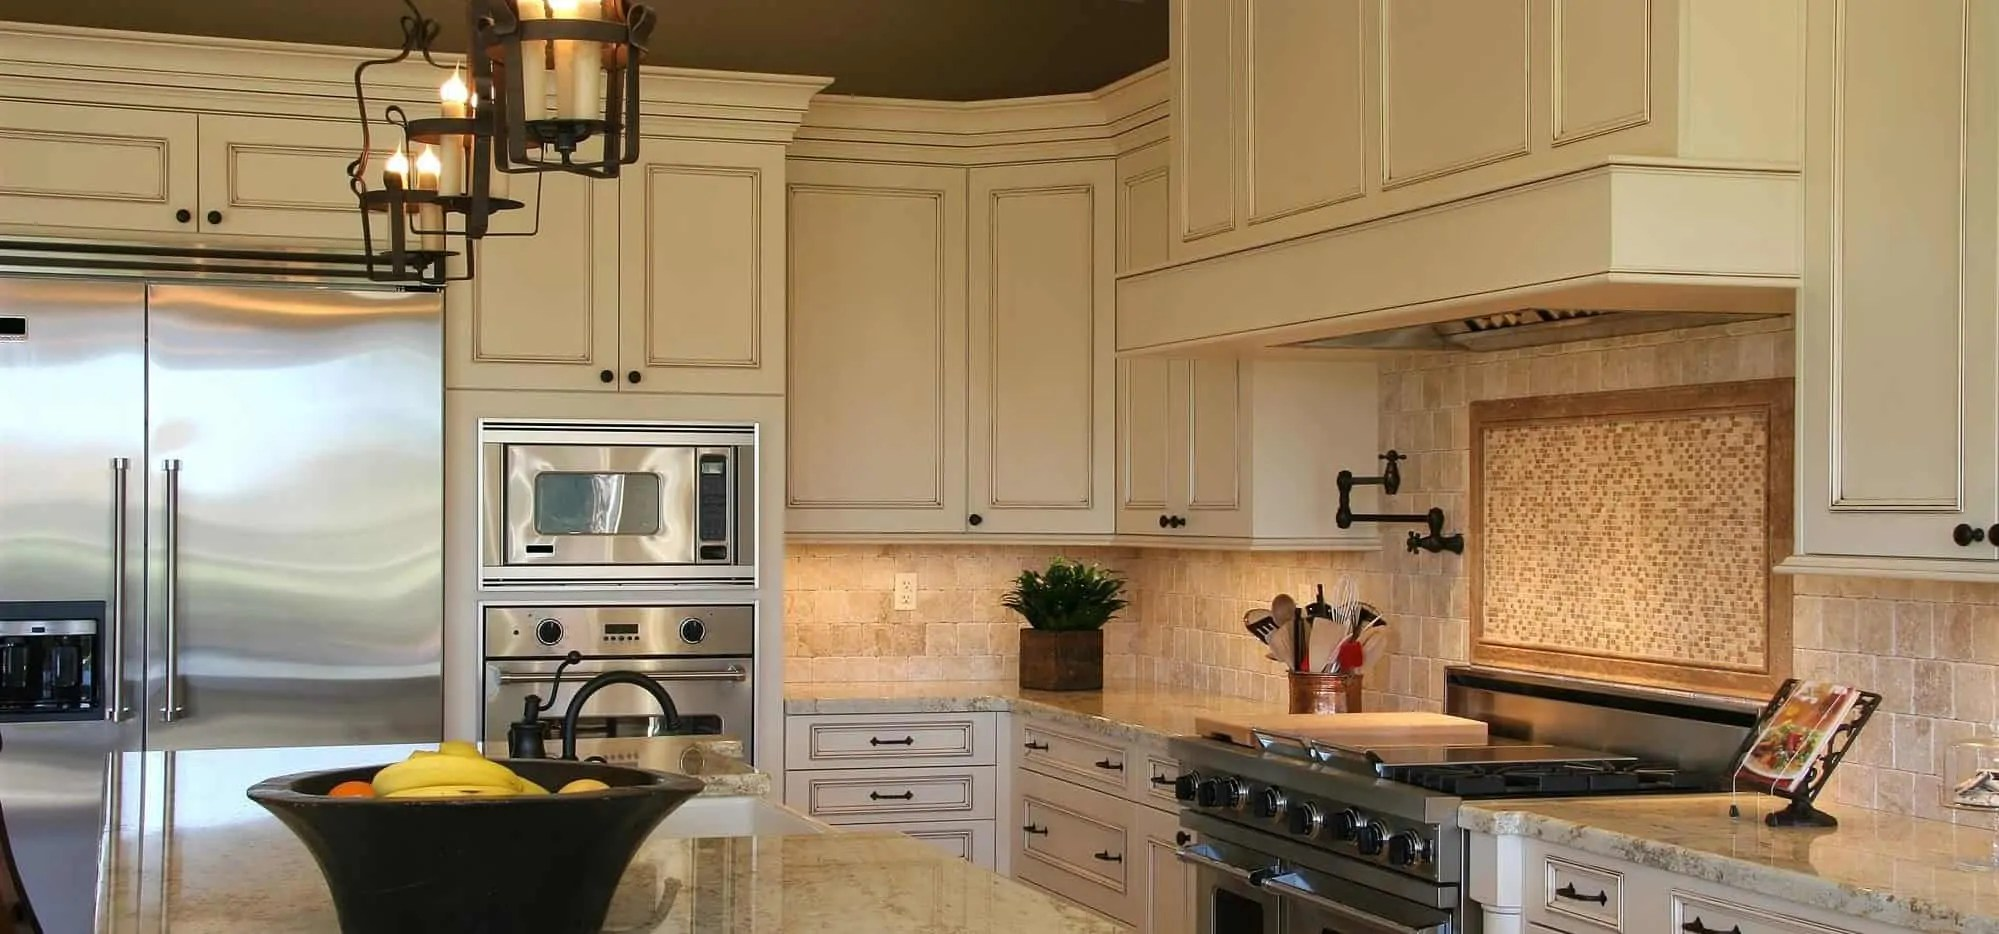 Custom Kitchen Cabinets Houston Corporate Retreats International Provides Upscale